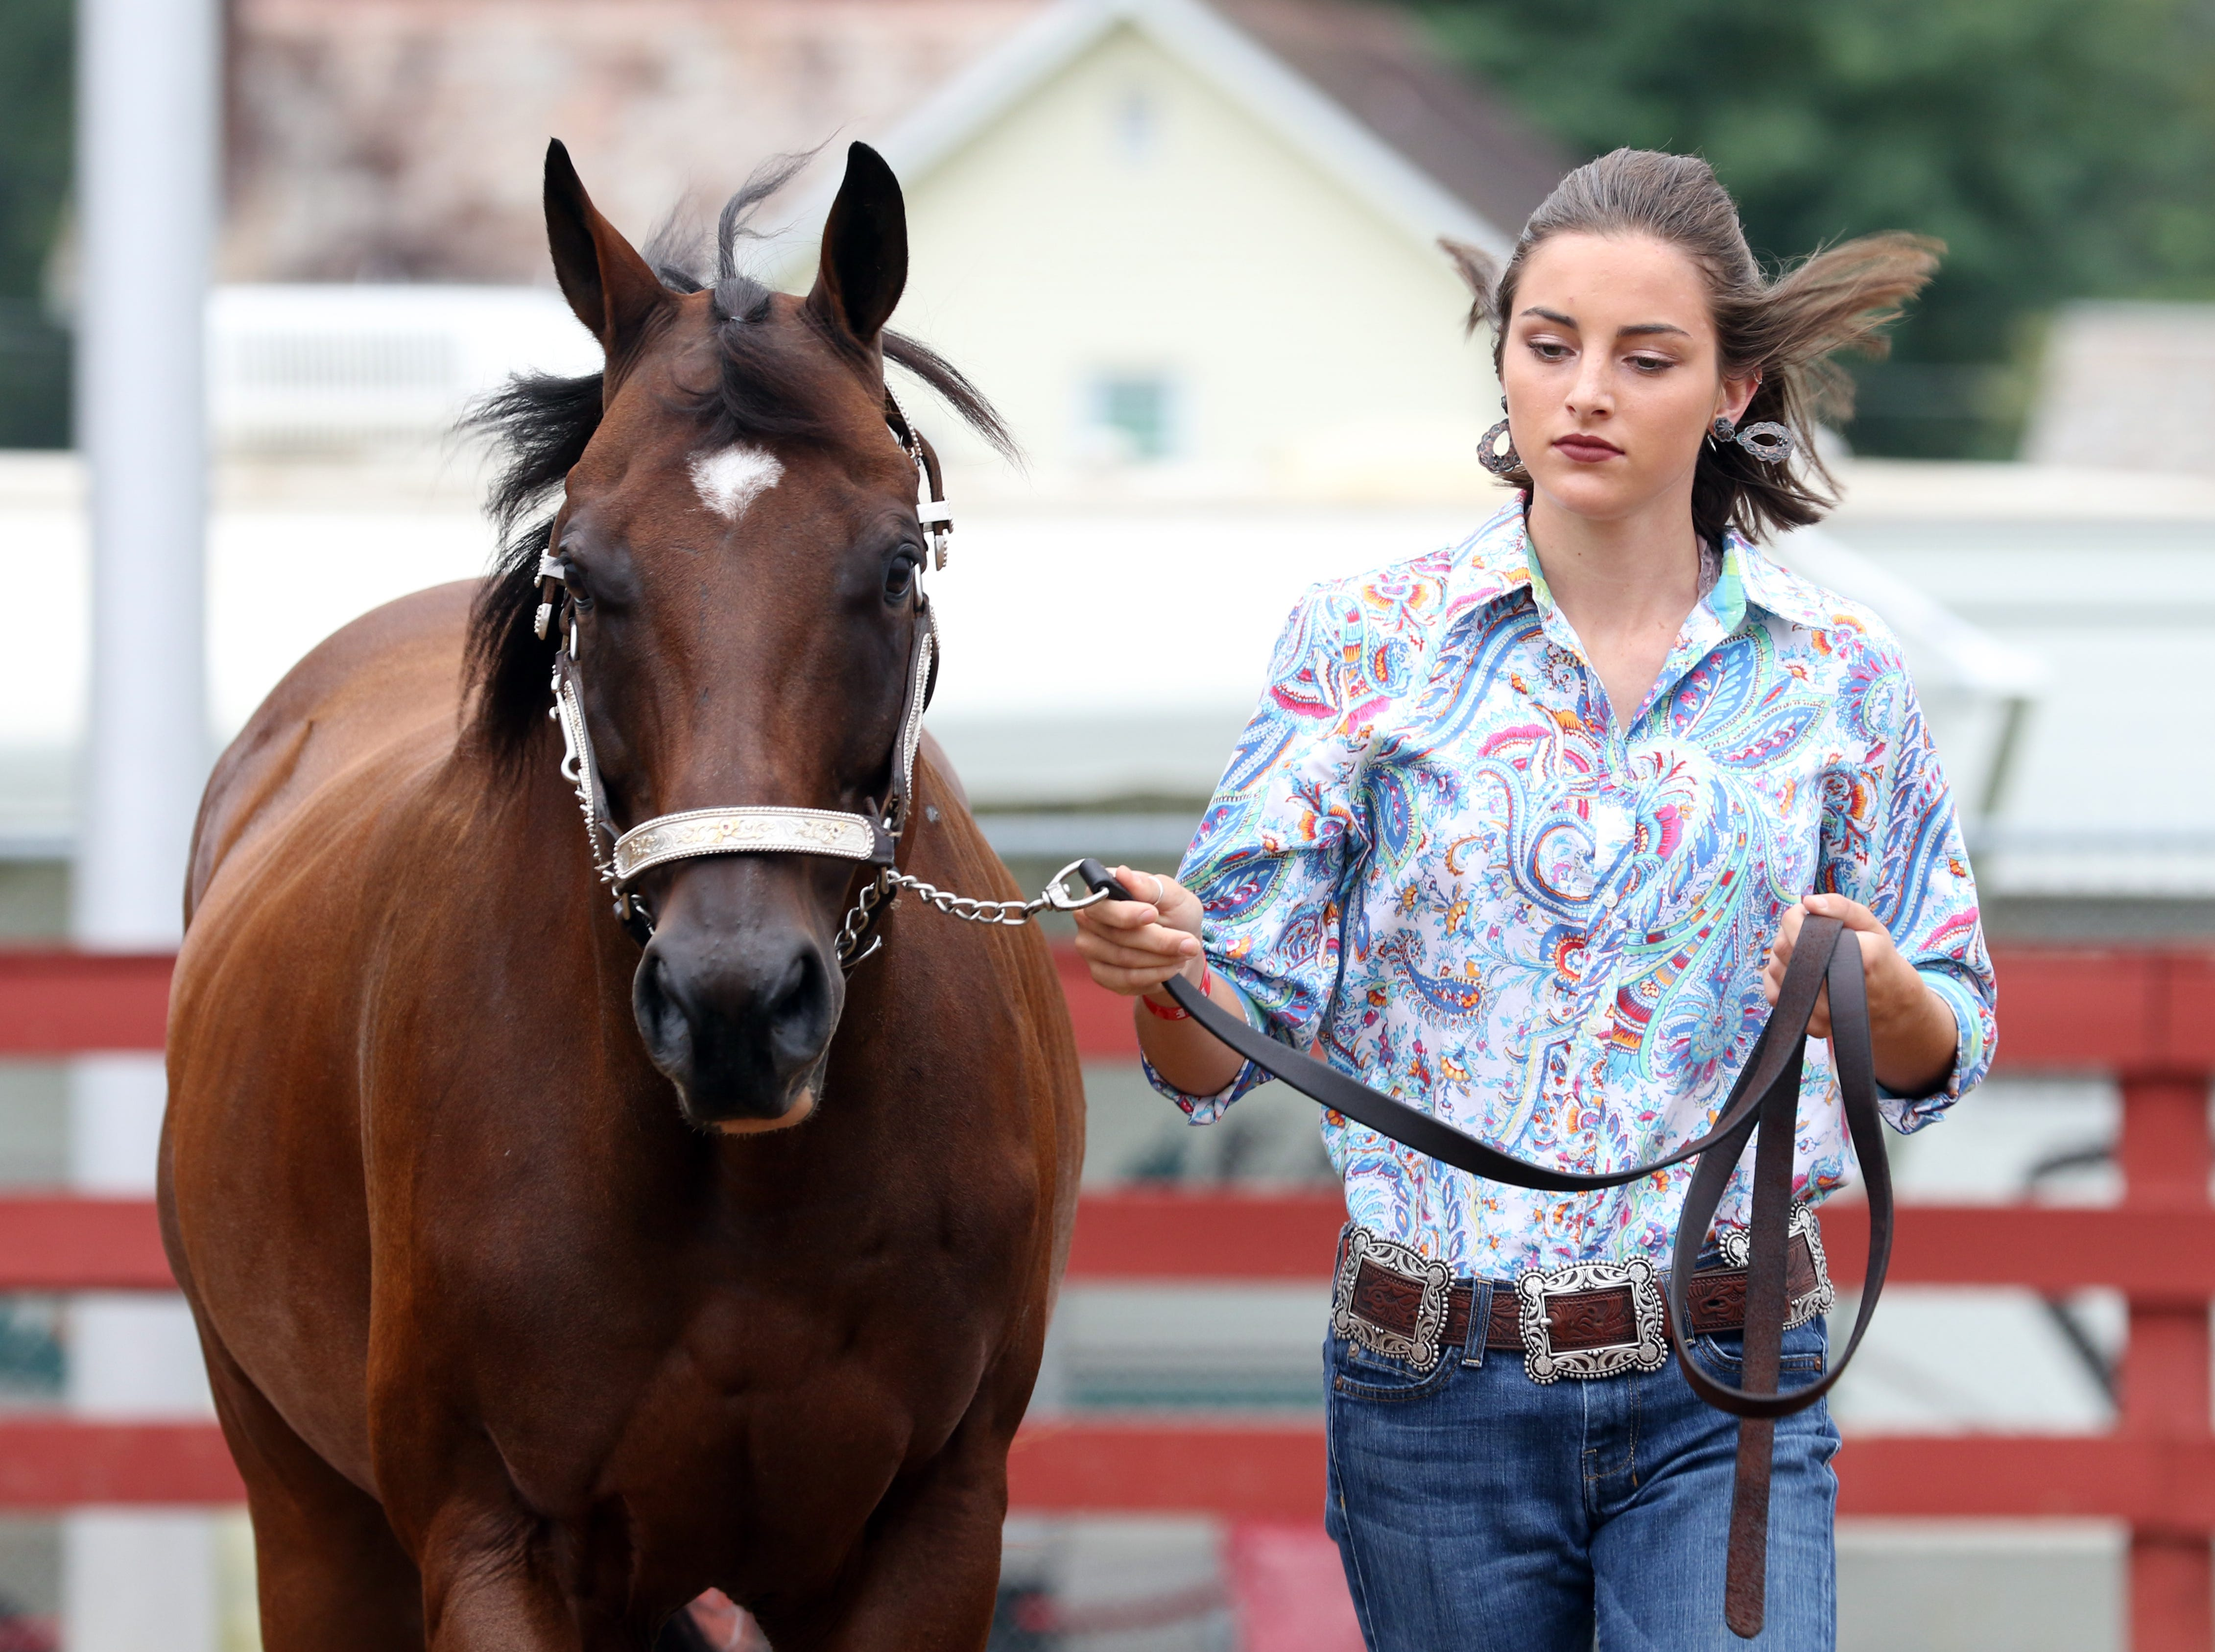 Hainsley Hatfield, 16, of Adamsville, shows a horse during the Showman of Showmen competition at the Muskingum County Fair on Friday.